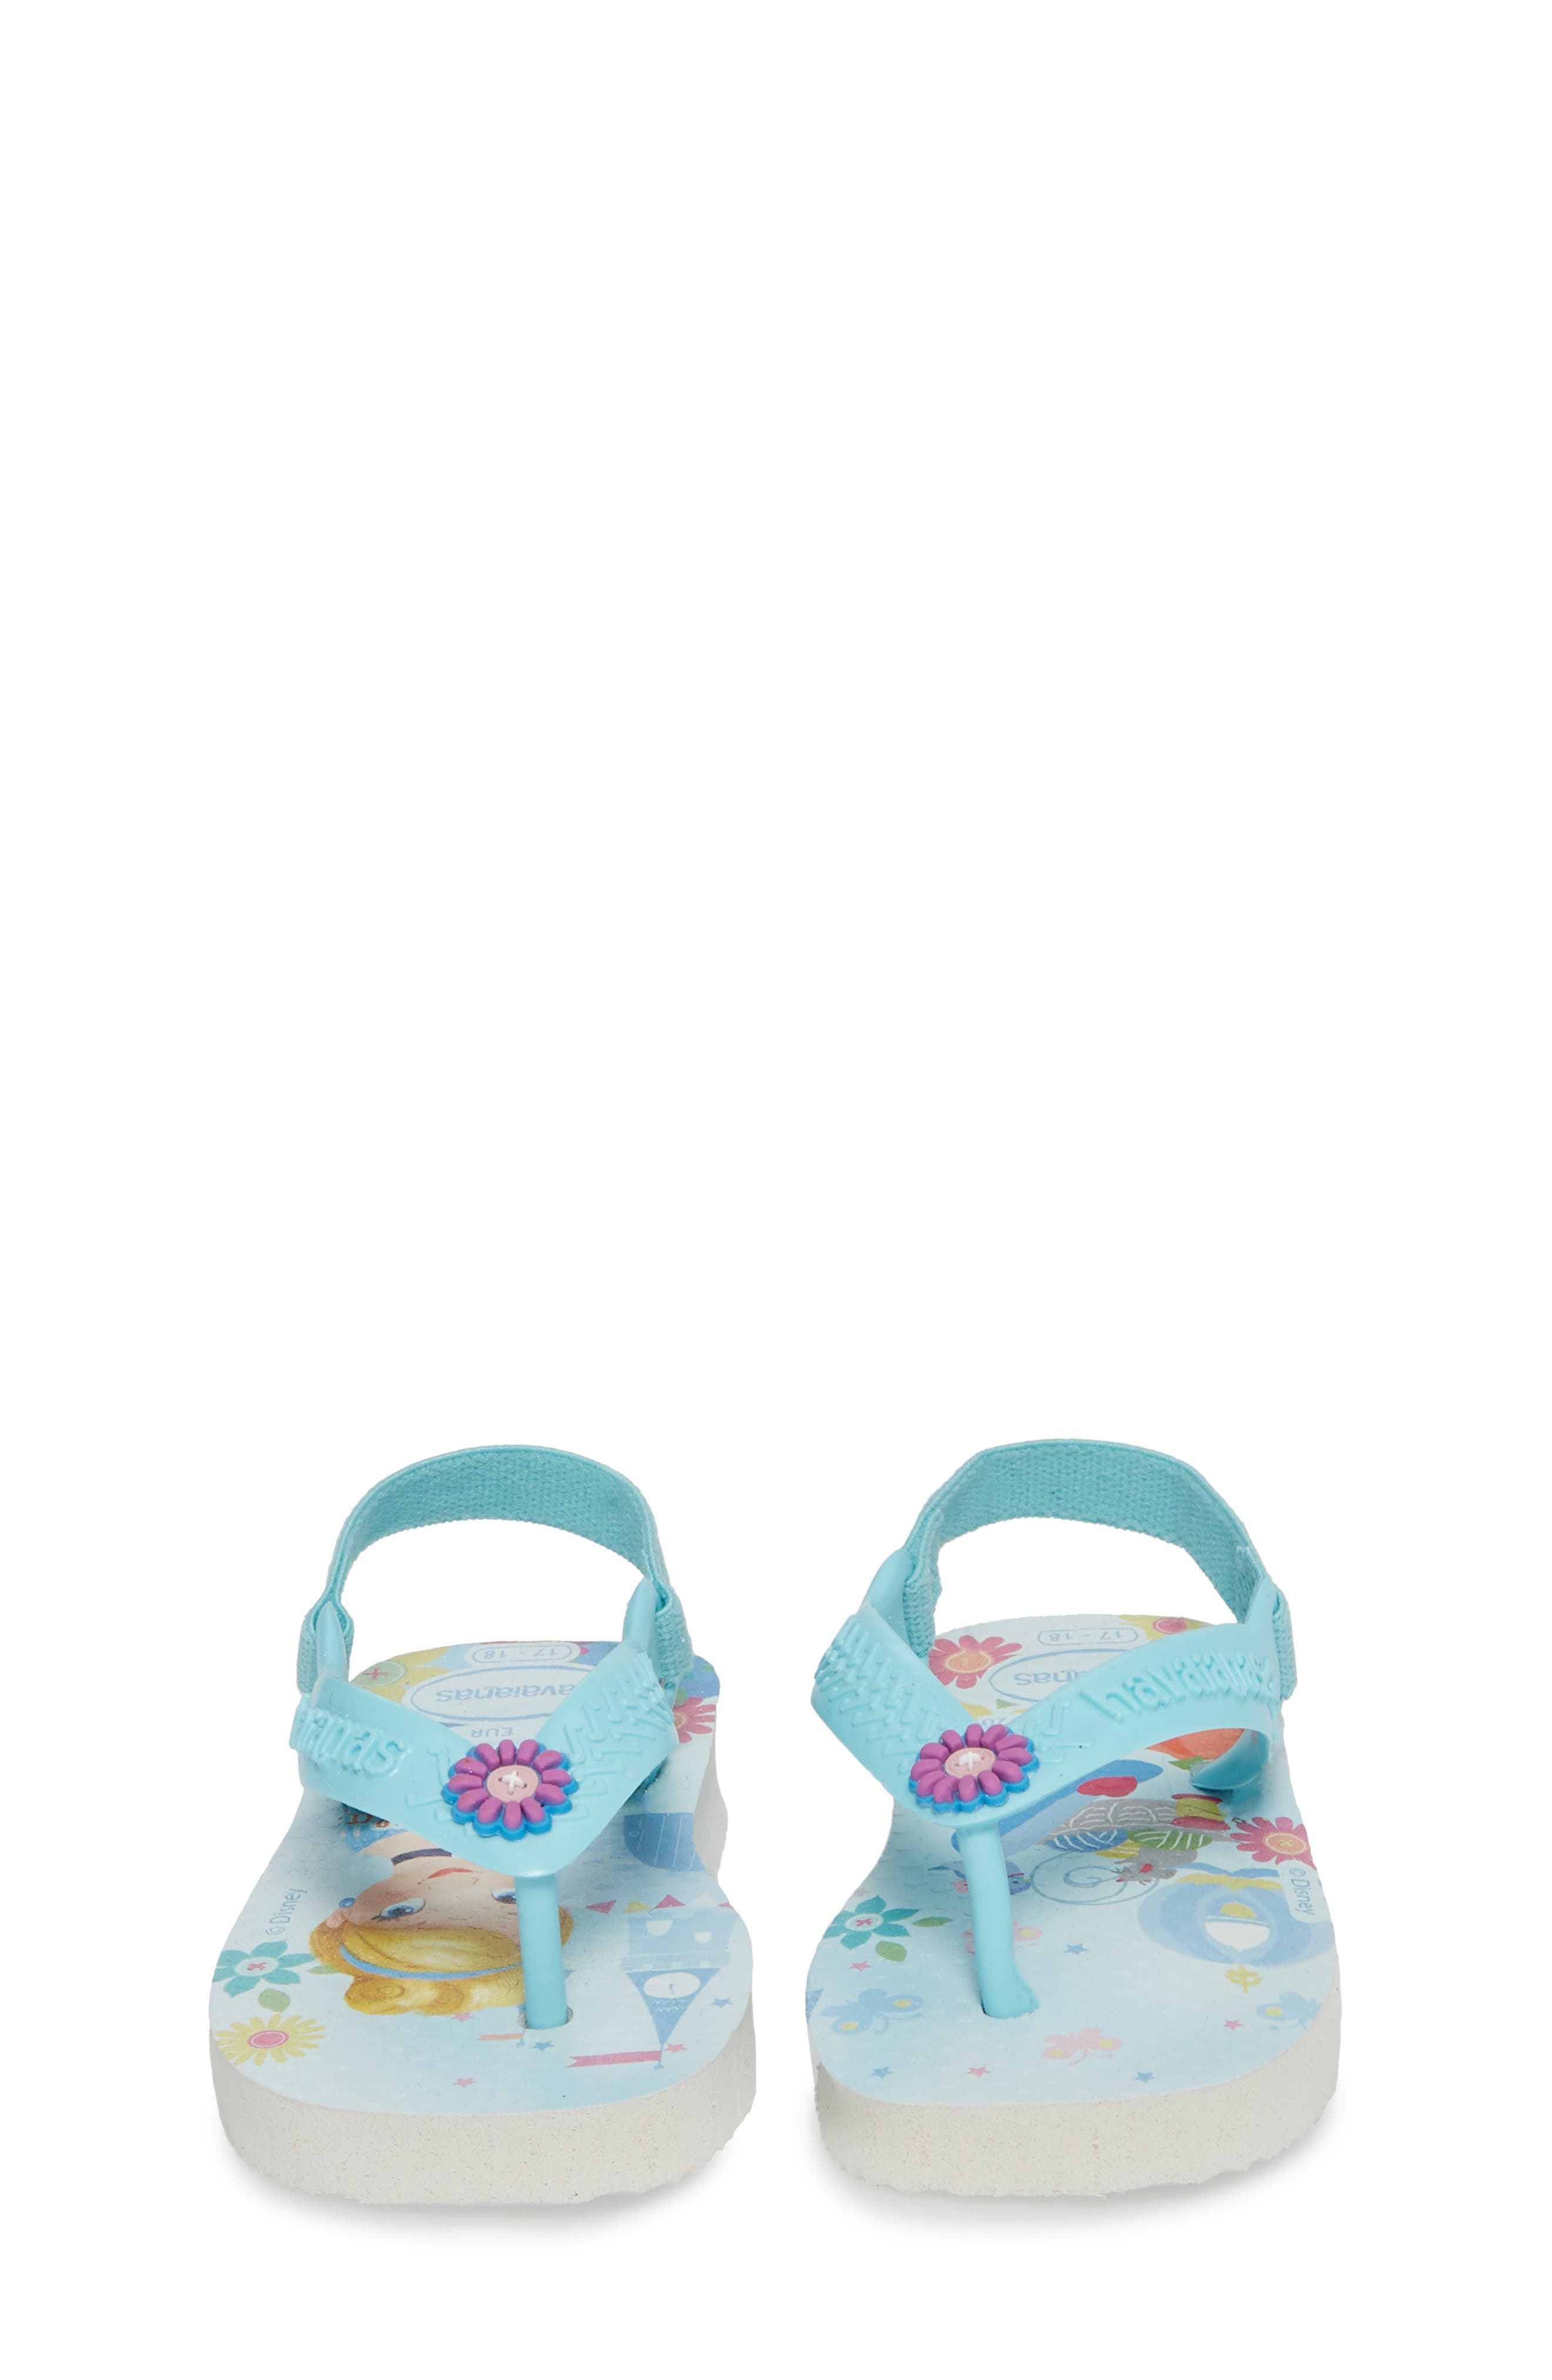 Baby Disney<sup>®</sup> Princess Flip Flop,                             Alternate thumbnail 5, color,                             White/ Ice Blue